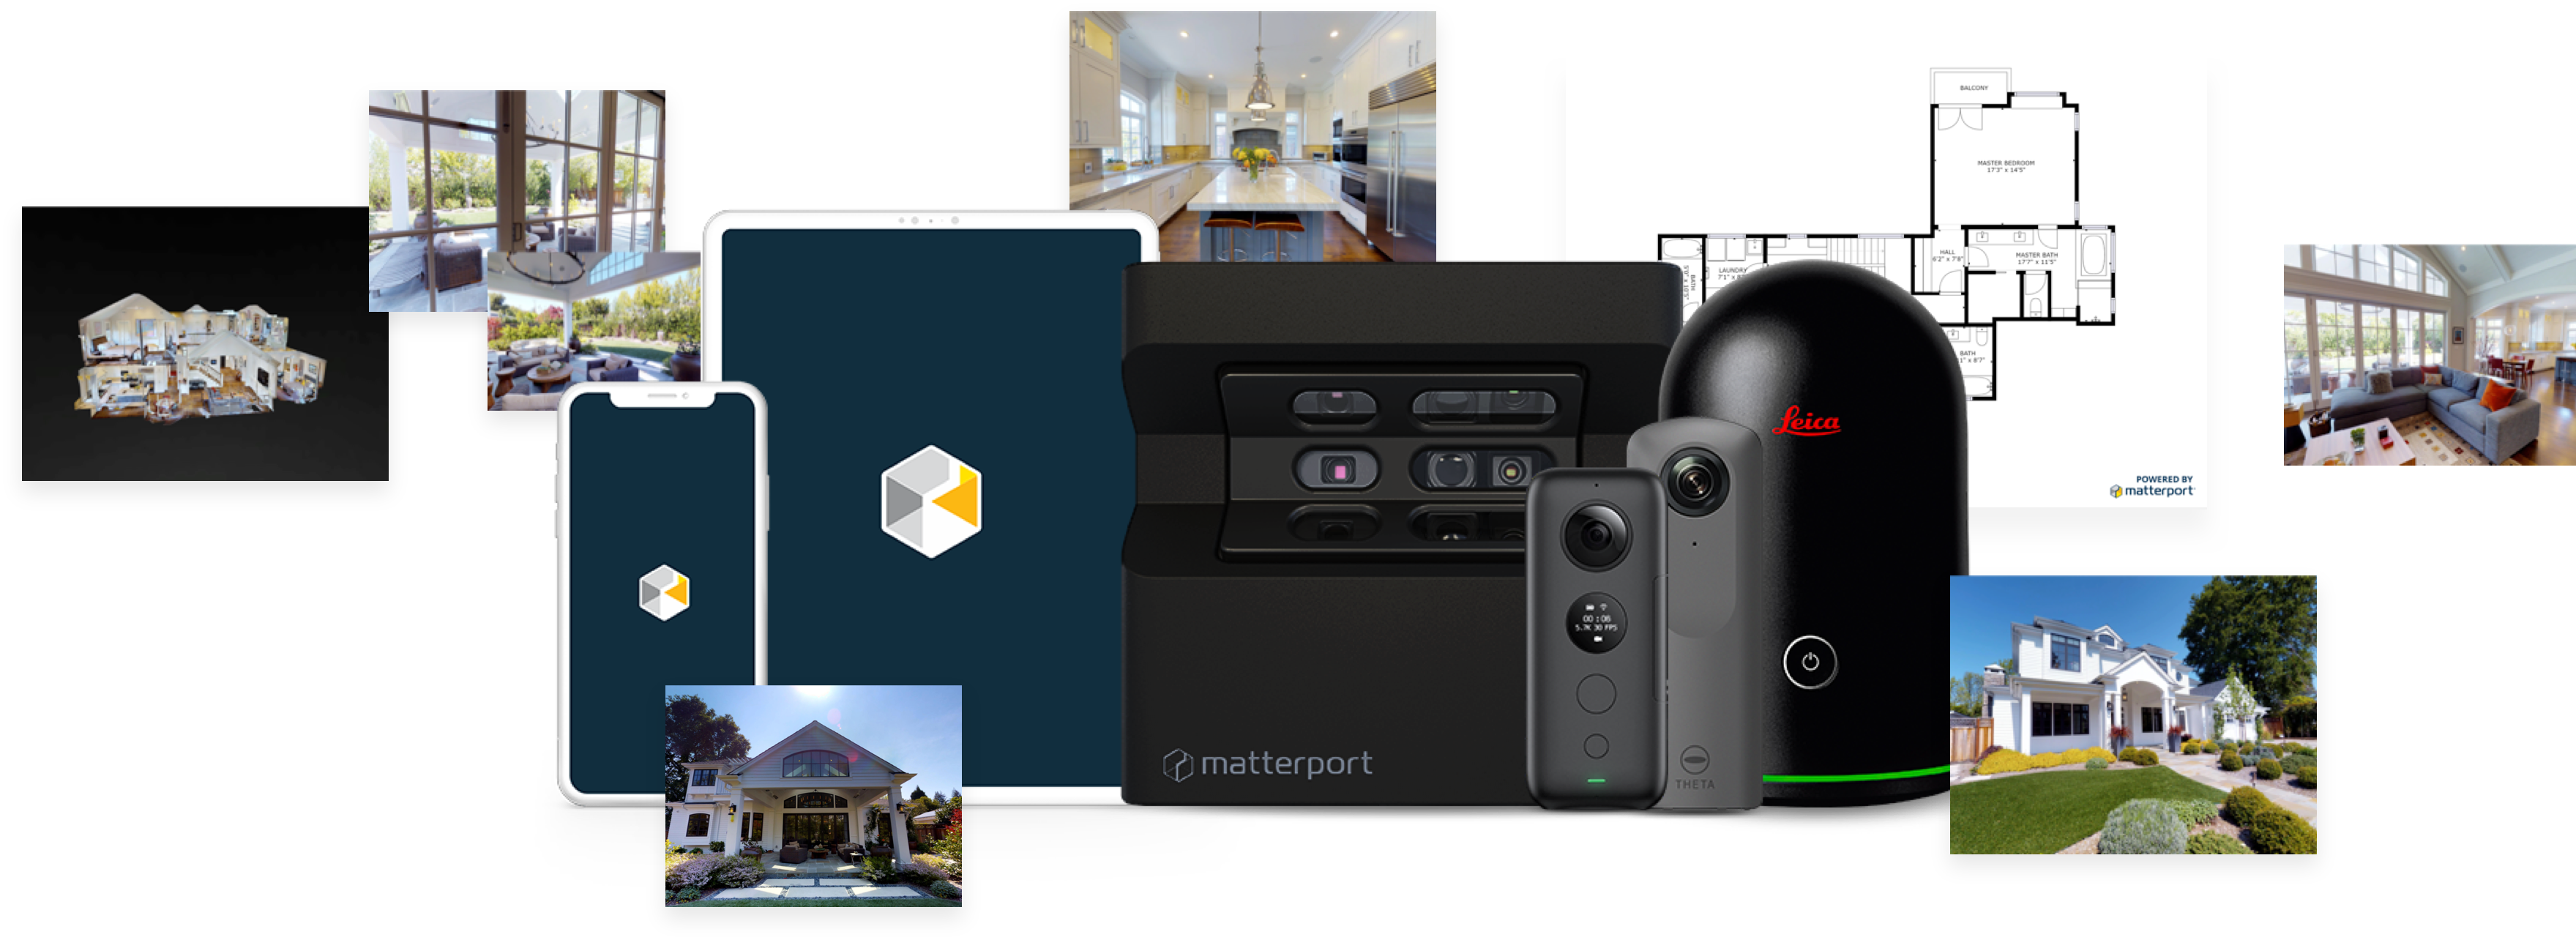 Matterport offers a varity of products for distrubing 3D models